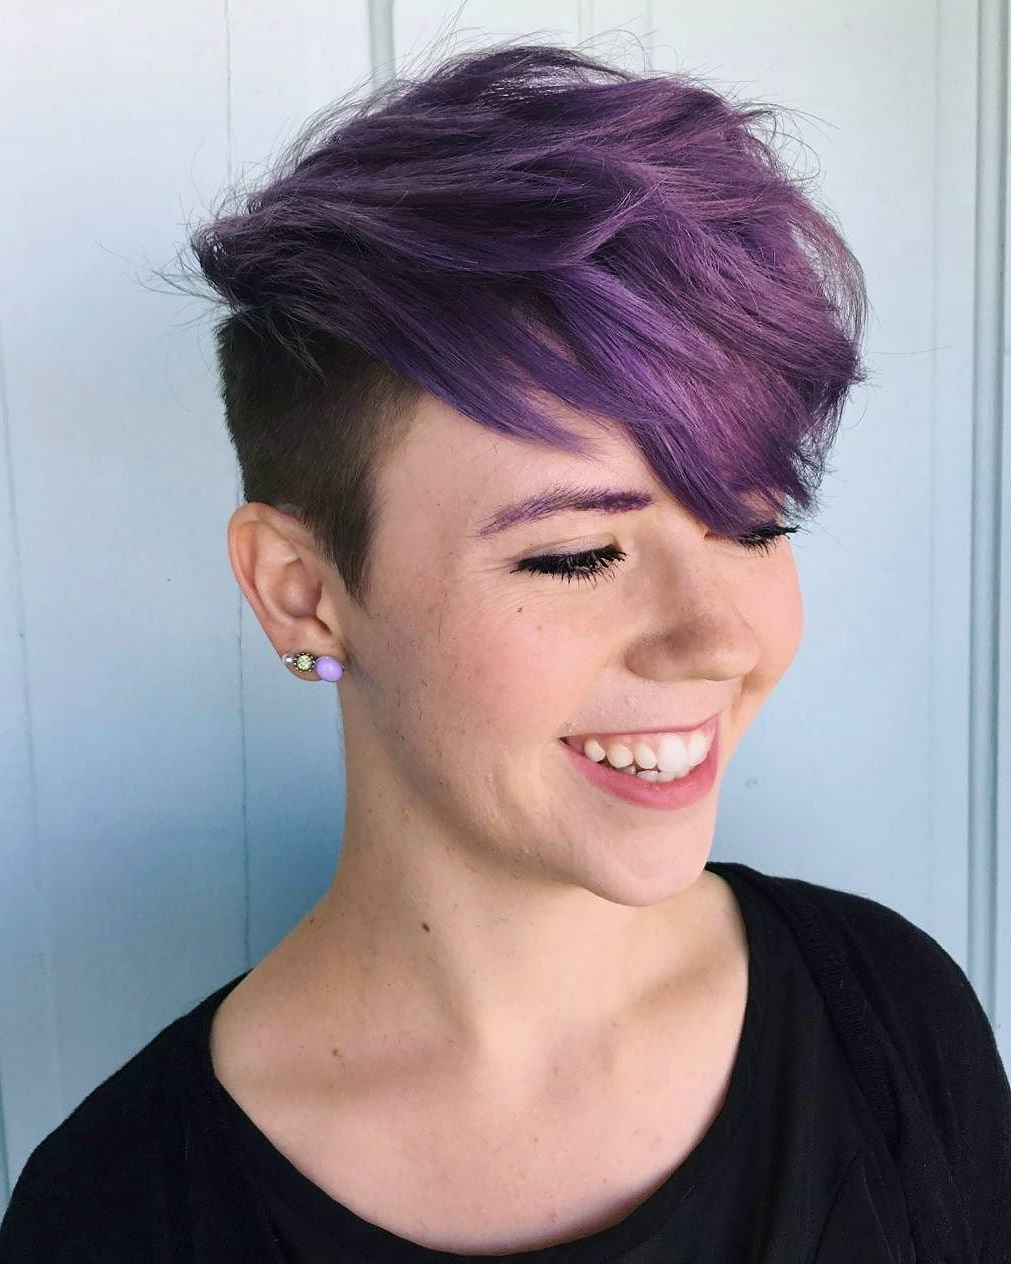 35 Brilliant Short Purple Hair Ideas — Too Stunning To Inside Trendy Pixie Haircuts With Vibrant Highlights (View 9 of 20)